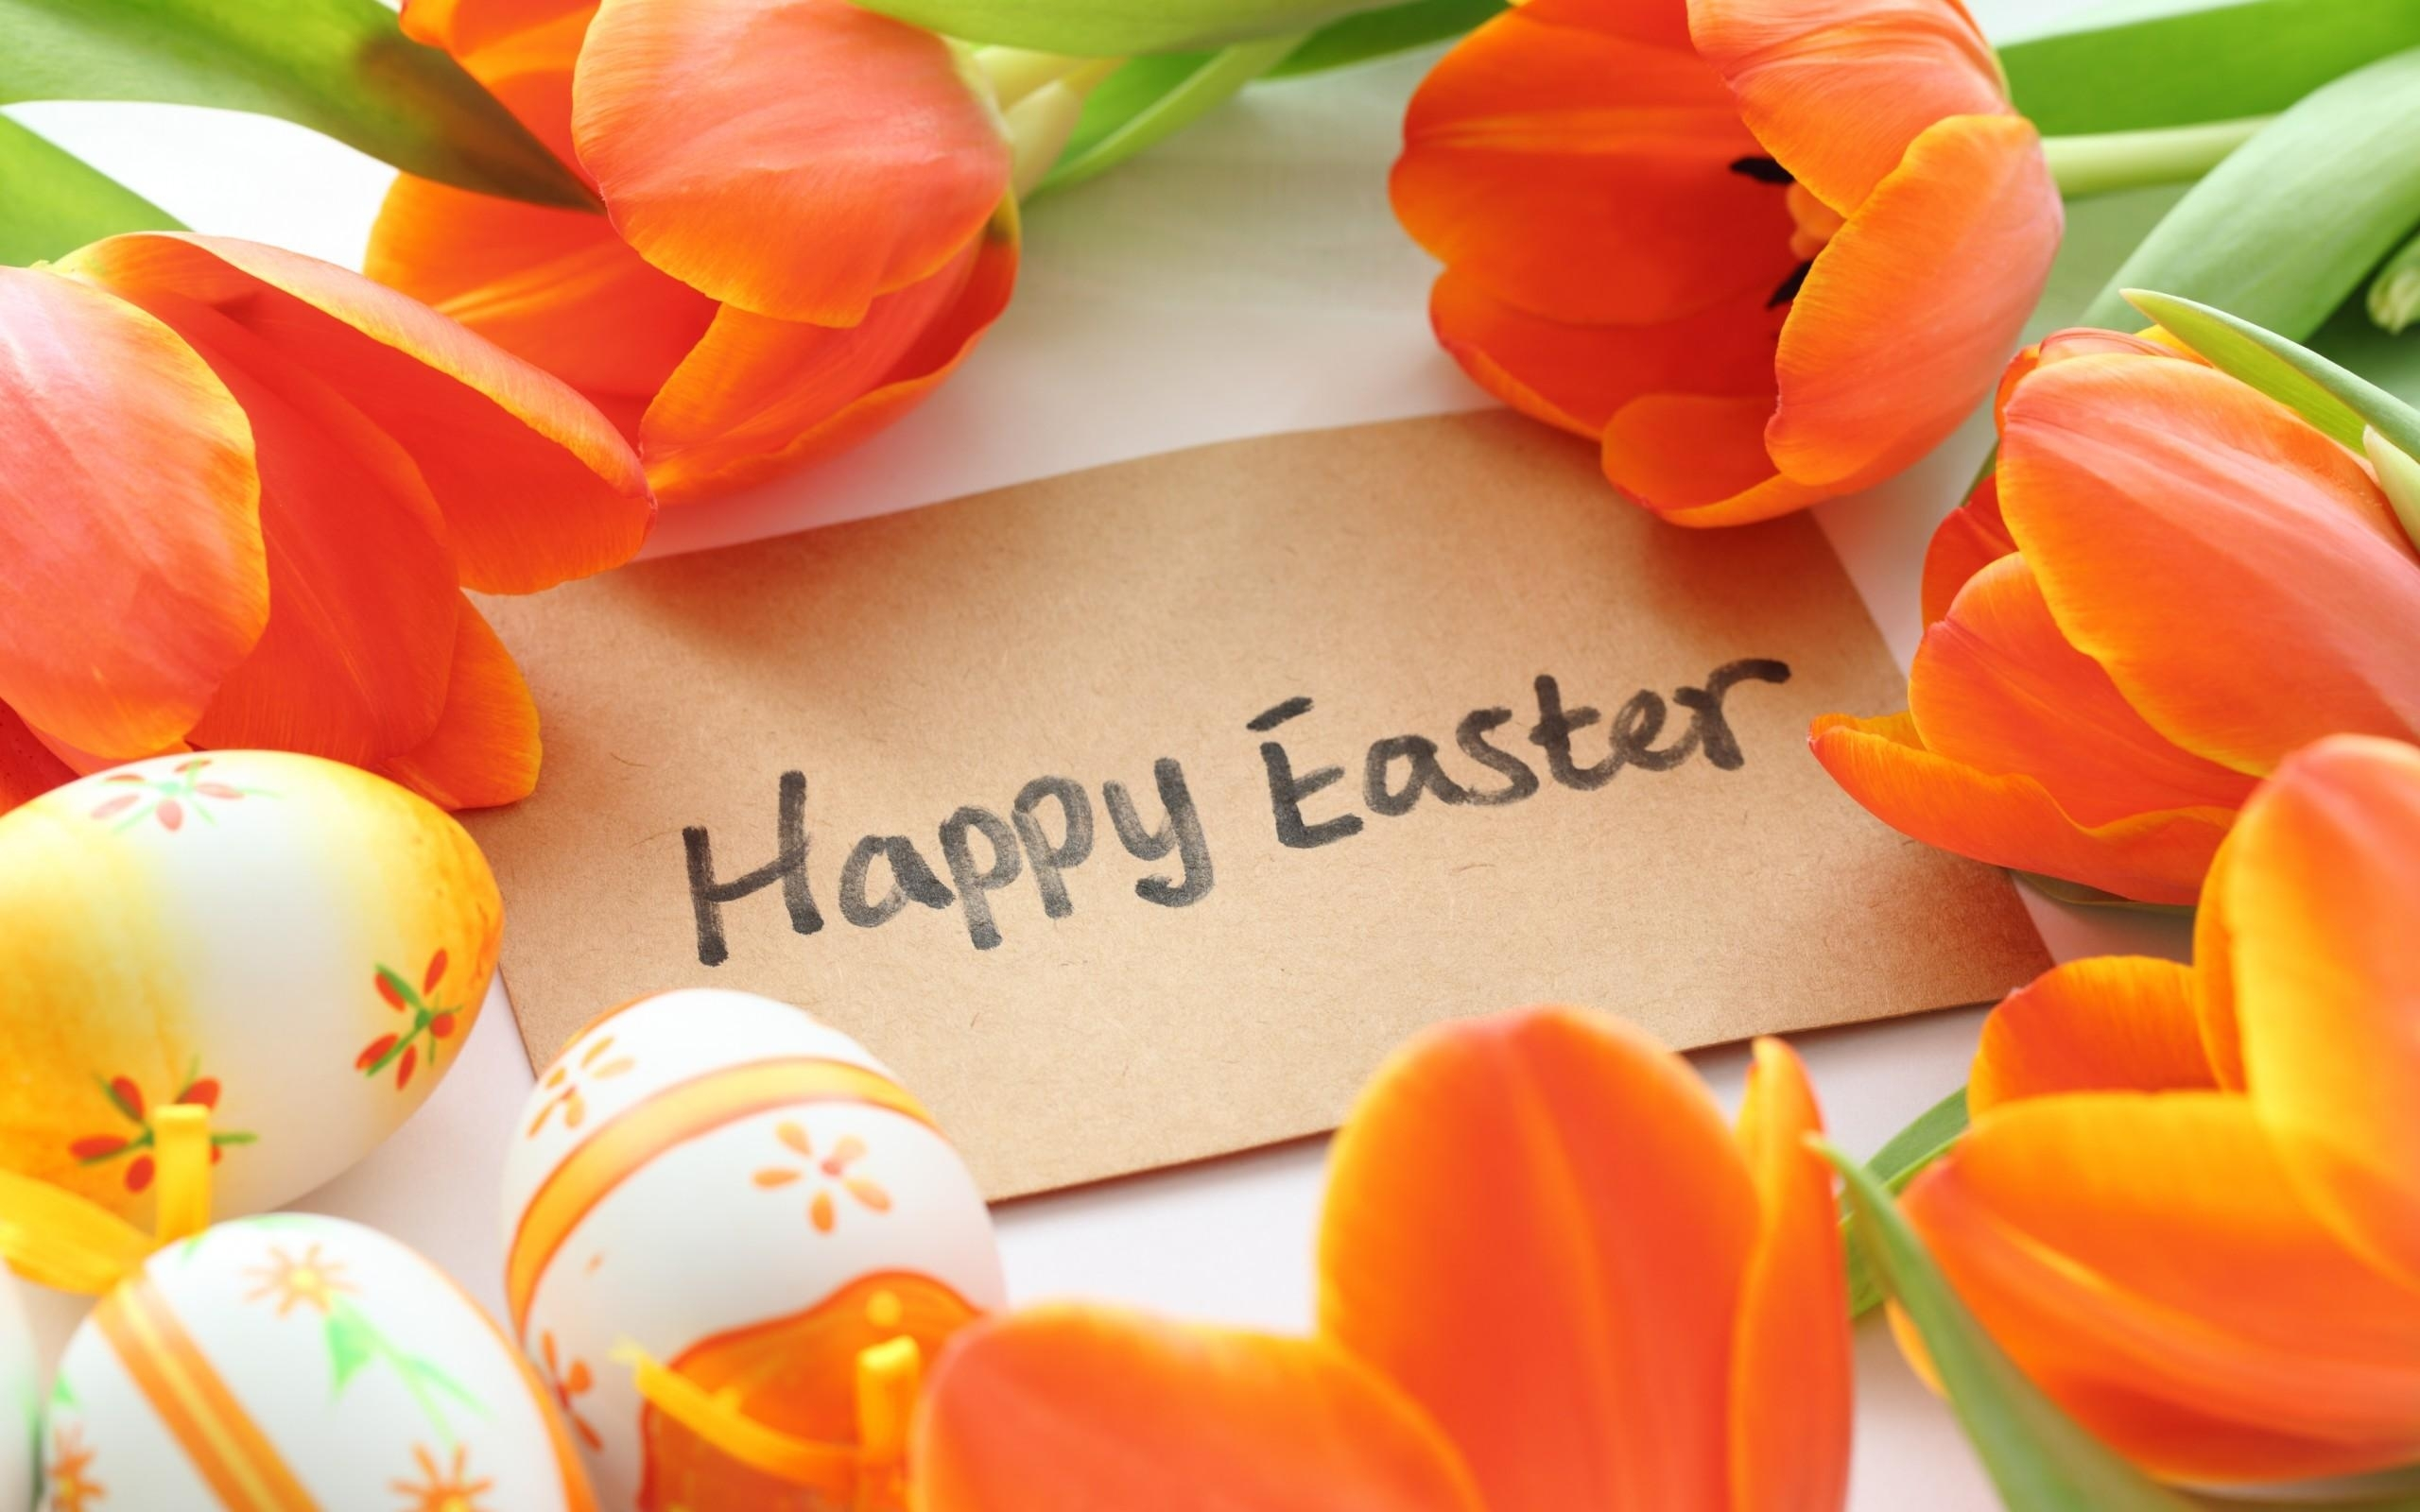 happy easter holiday wallpaper hd - media file | pixelstalk